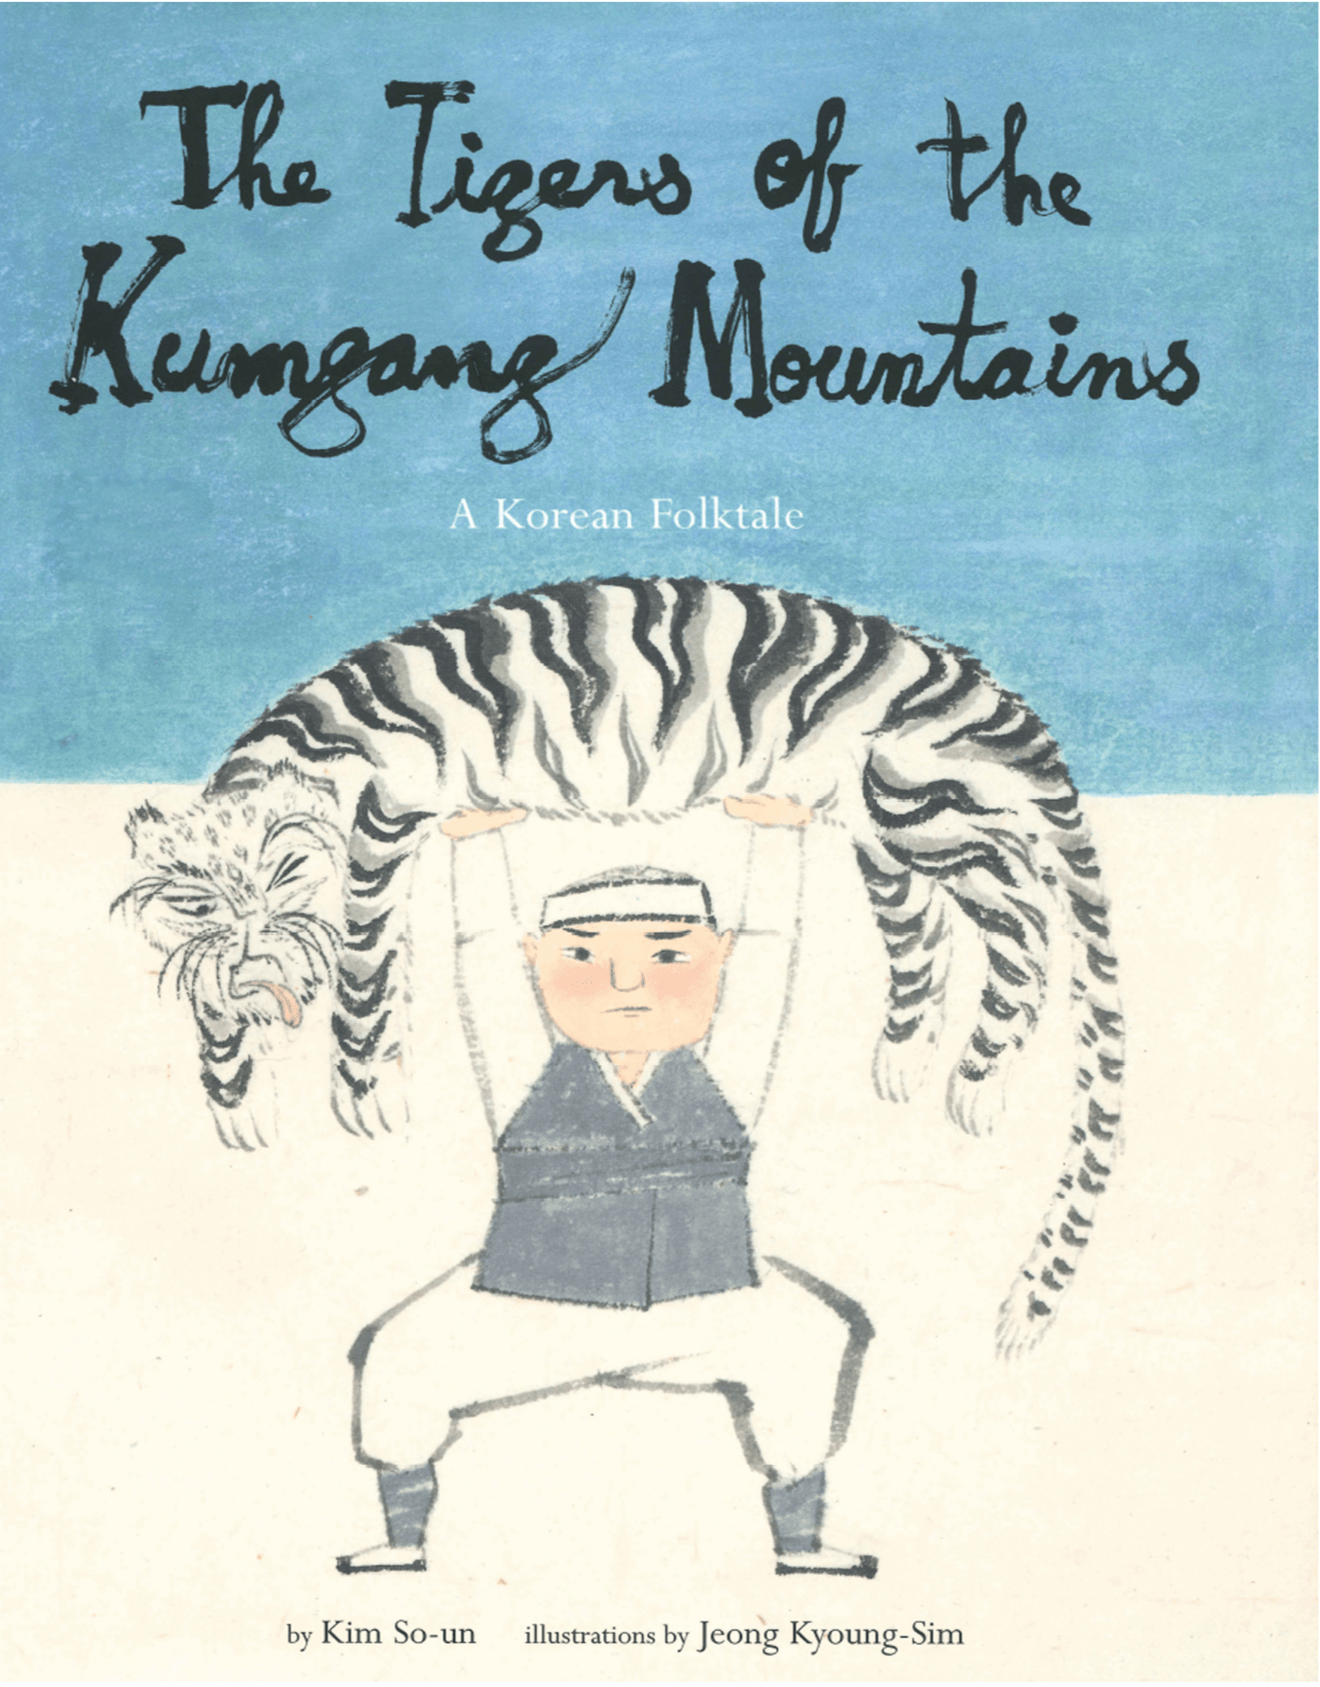 Tigers of the Kumgang Mountains